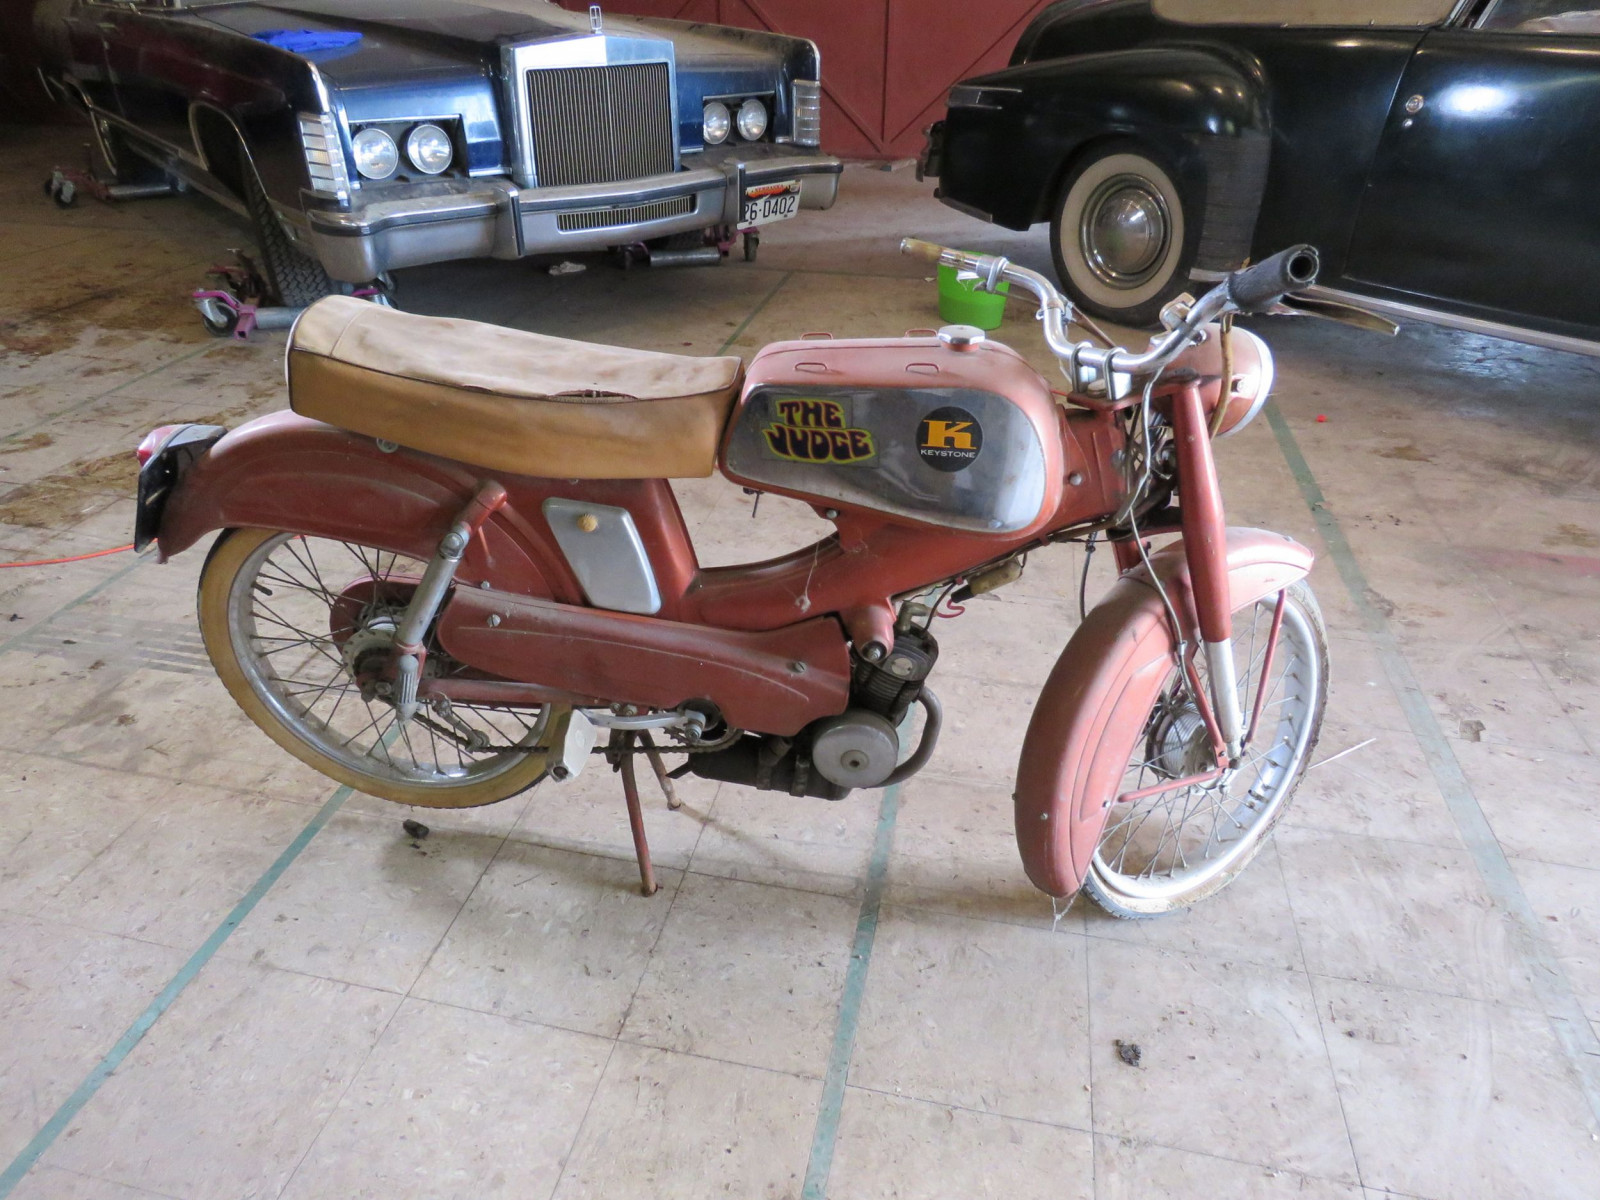 MotobeCane The Judge Motorcycle - Image 6